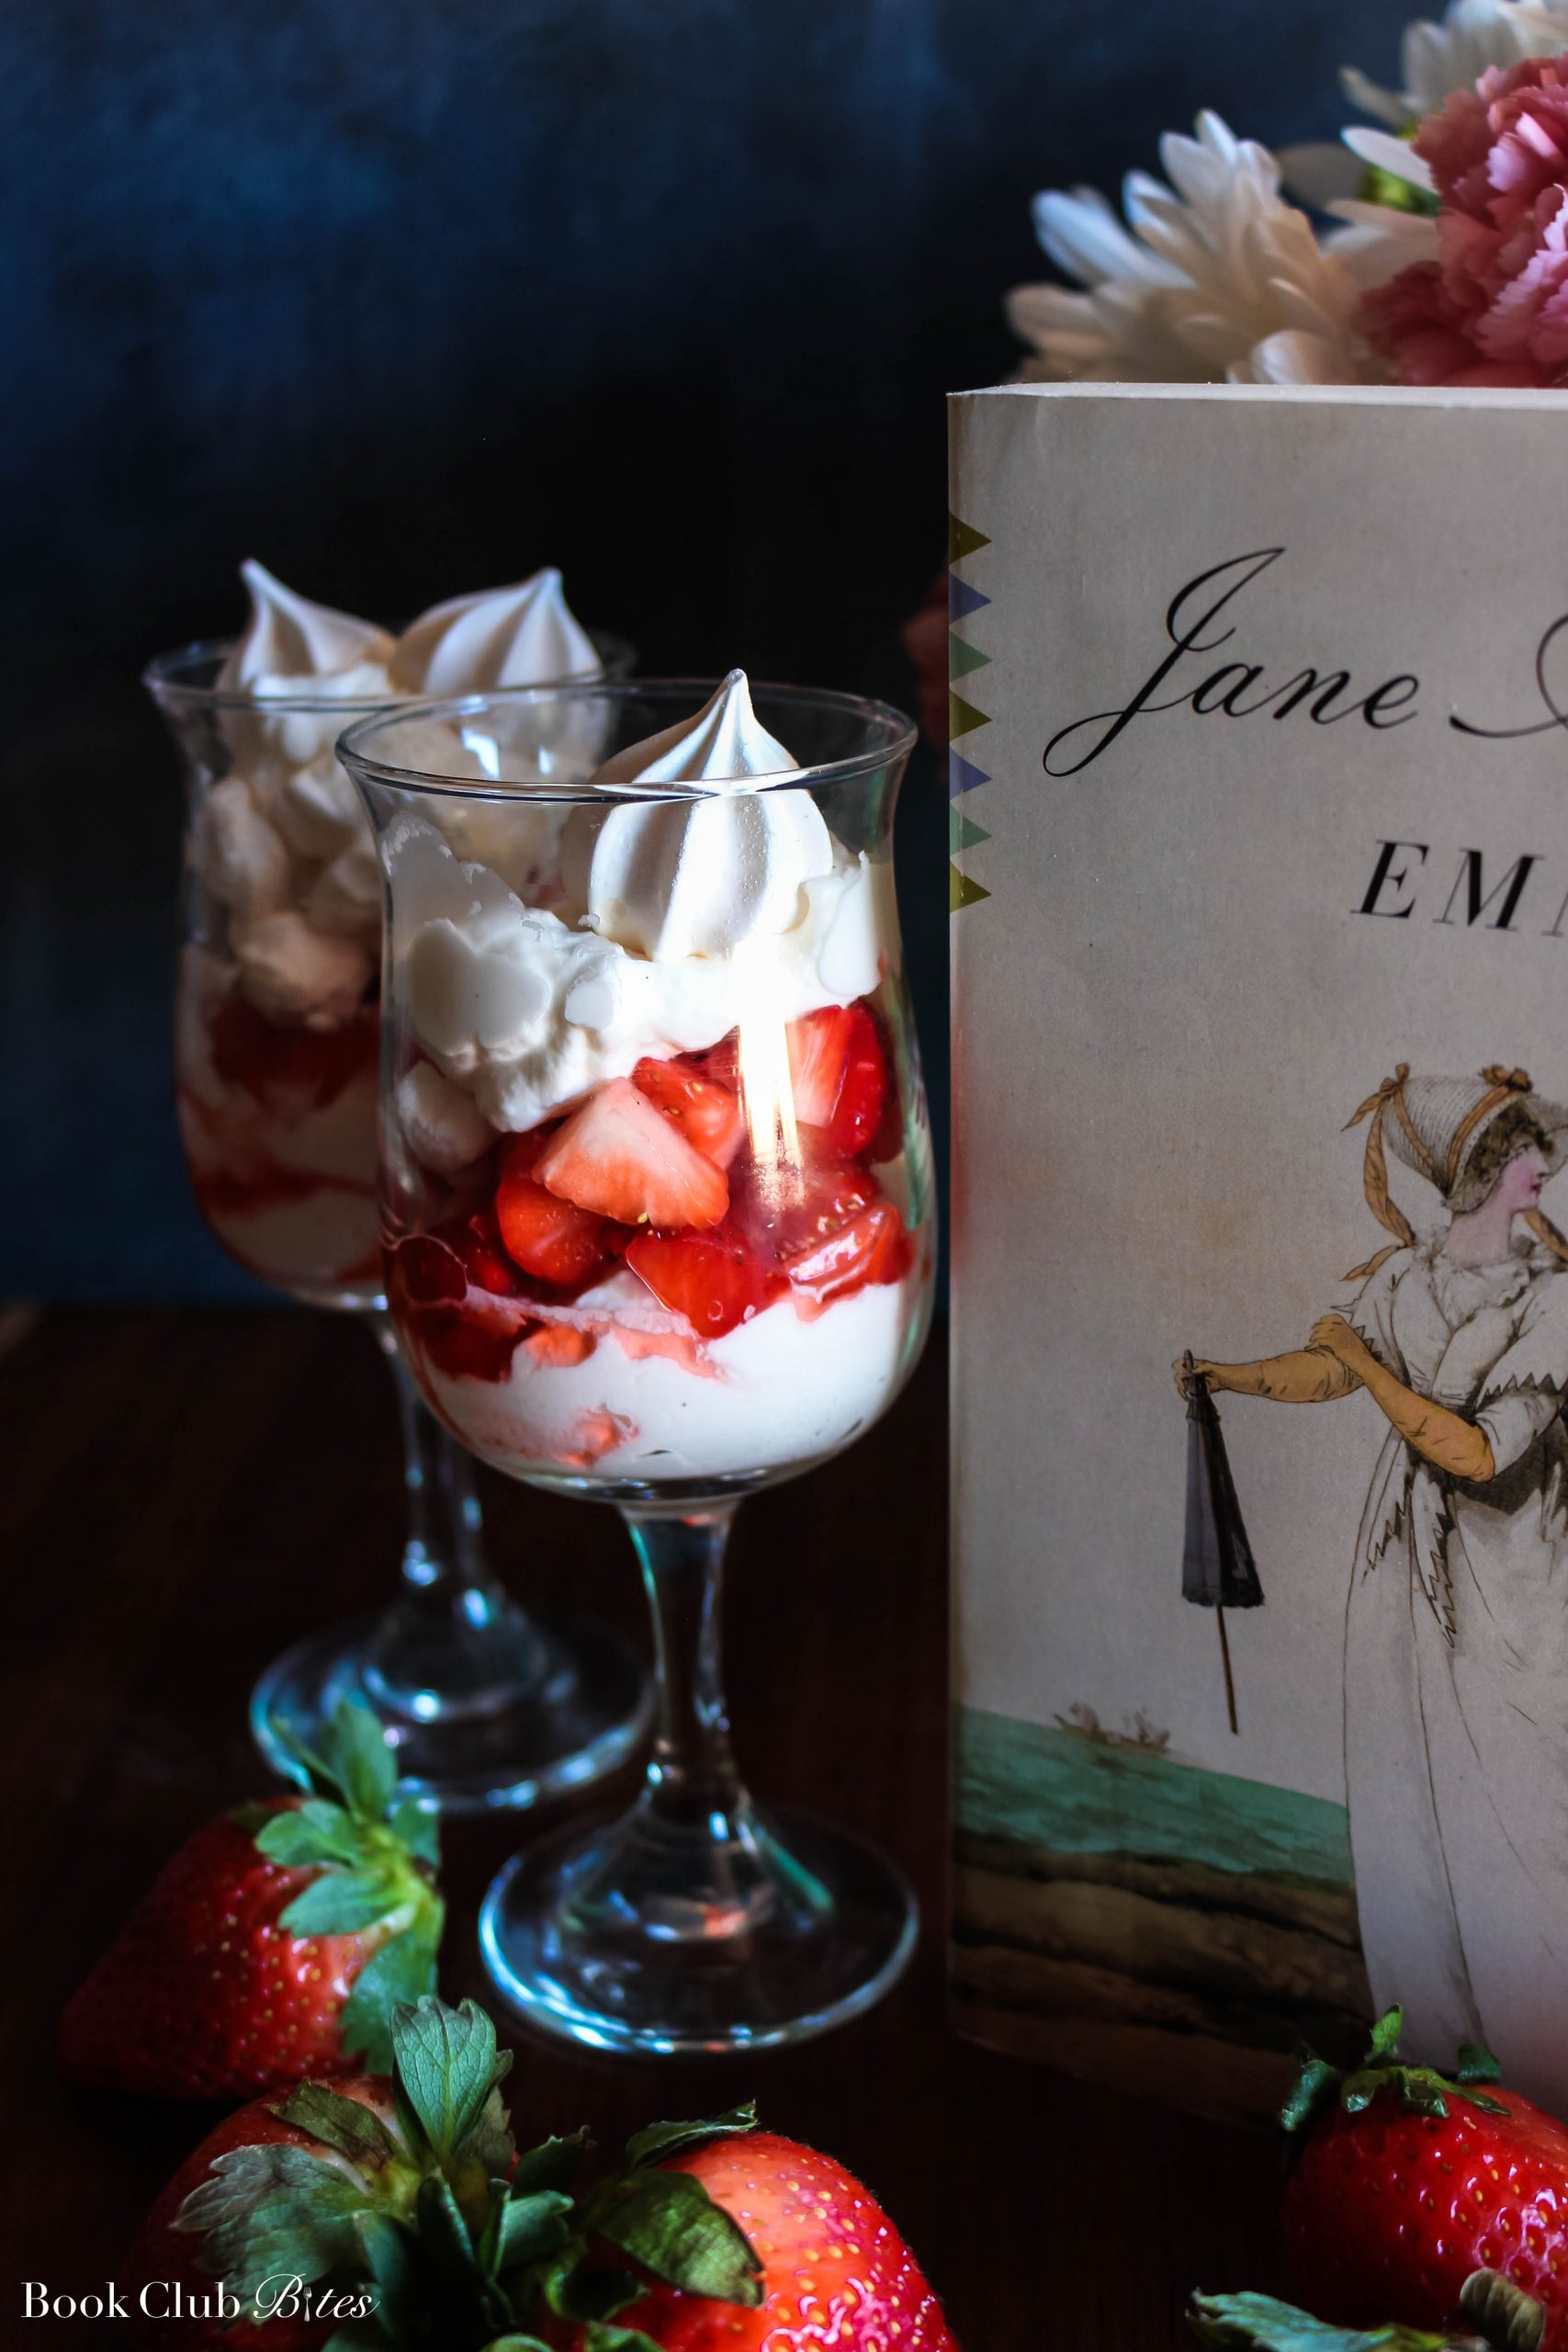 Emma Book Club Questions and Recipe